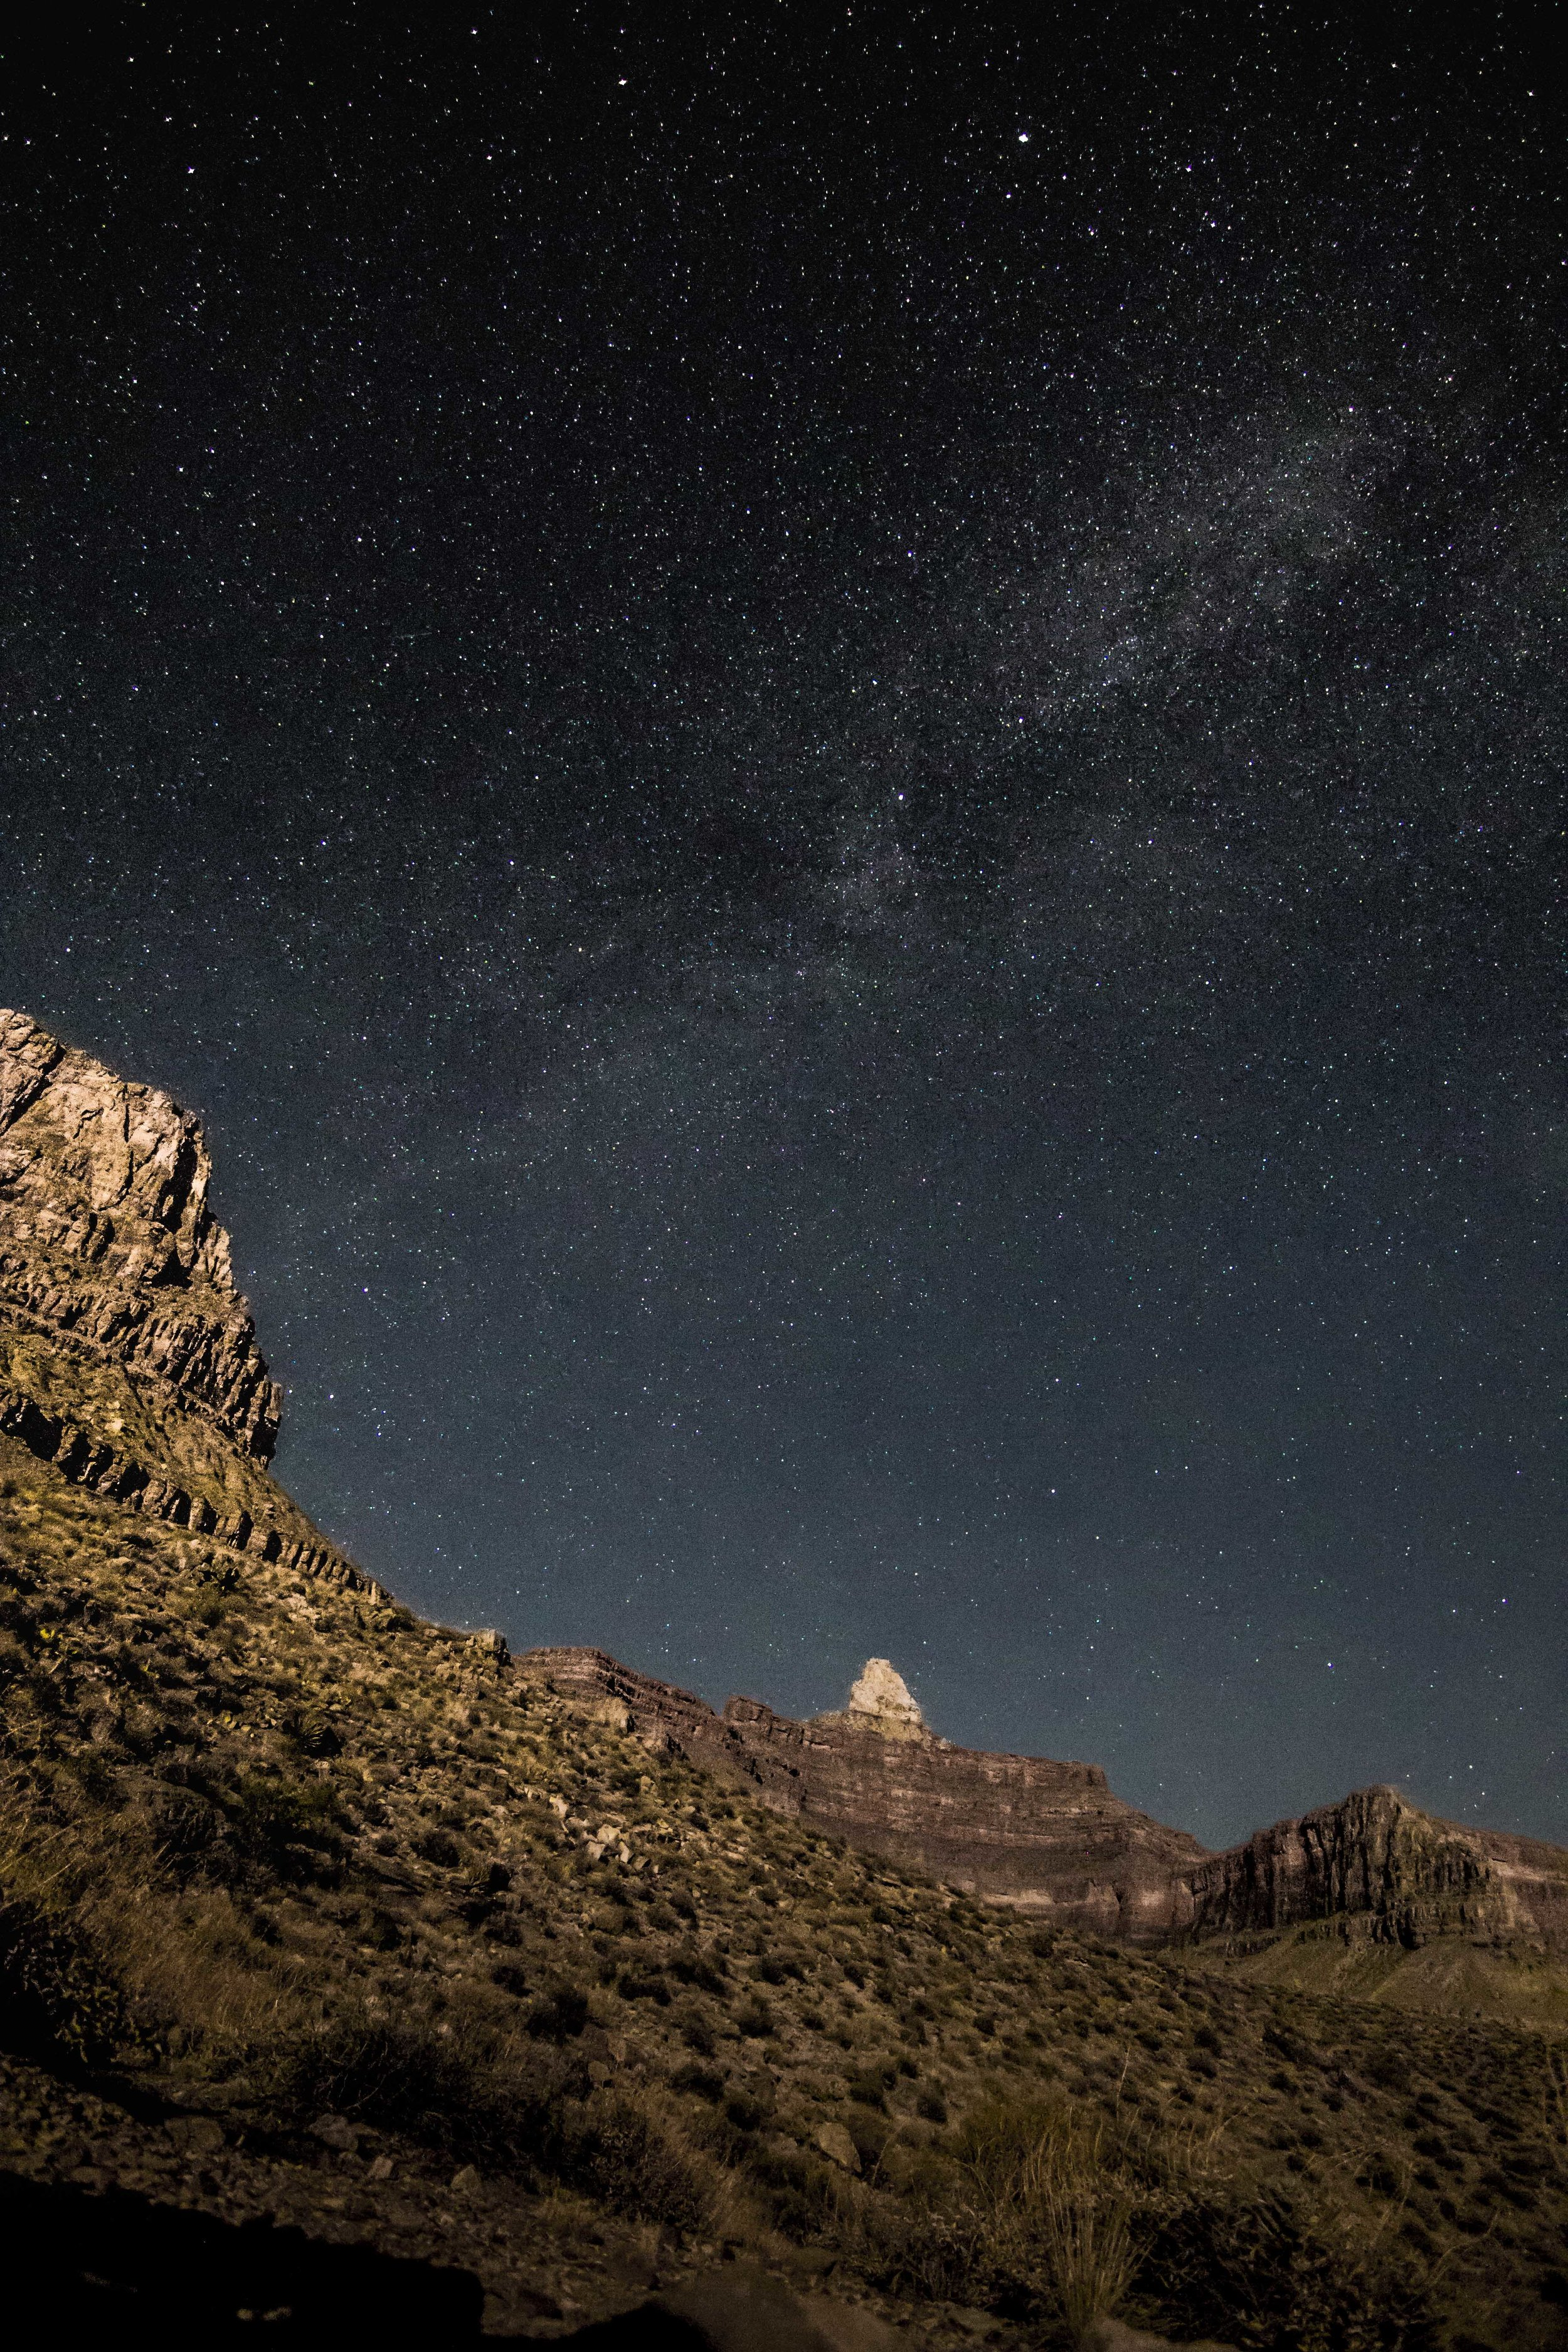 another night at the bivy, Zoroaster and the Milky Way